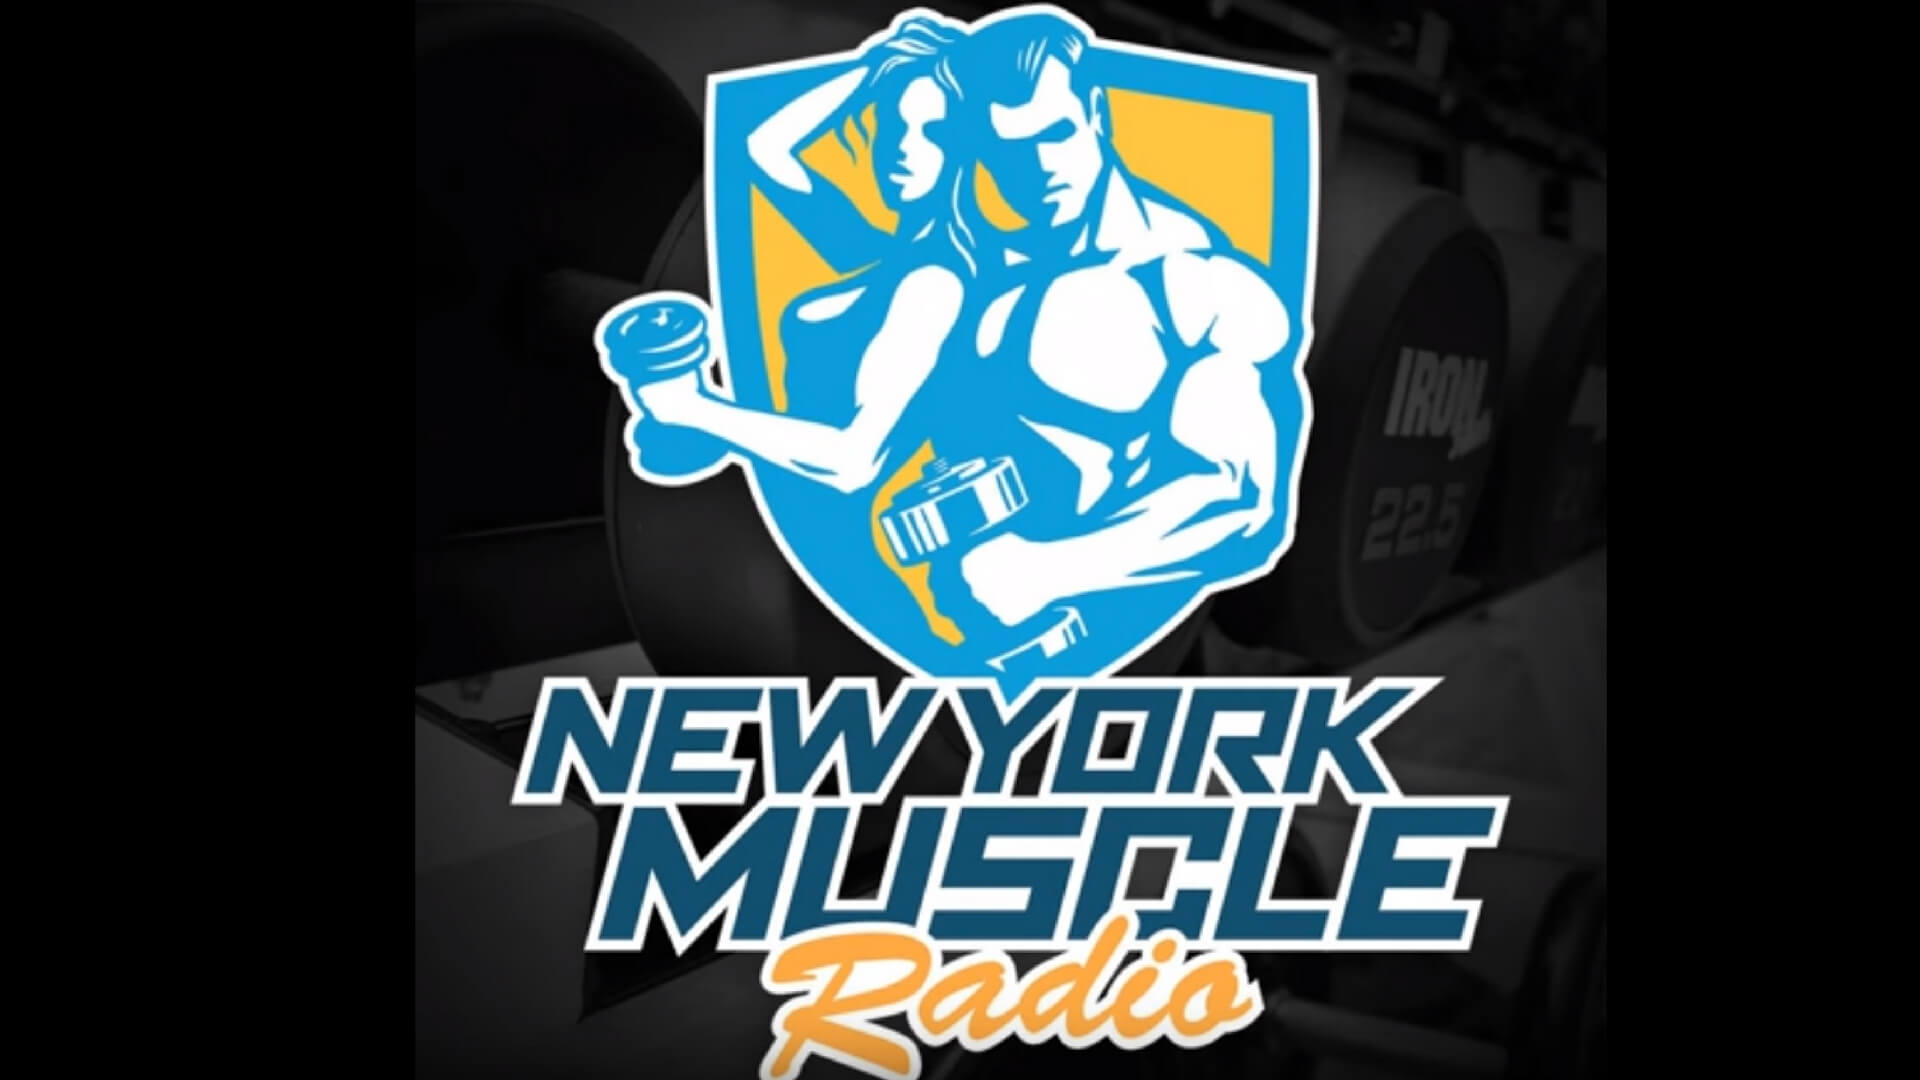 New York Muscle Radio